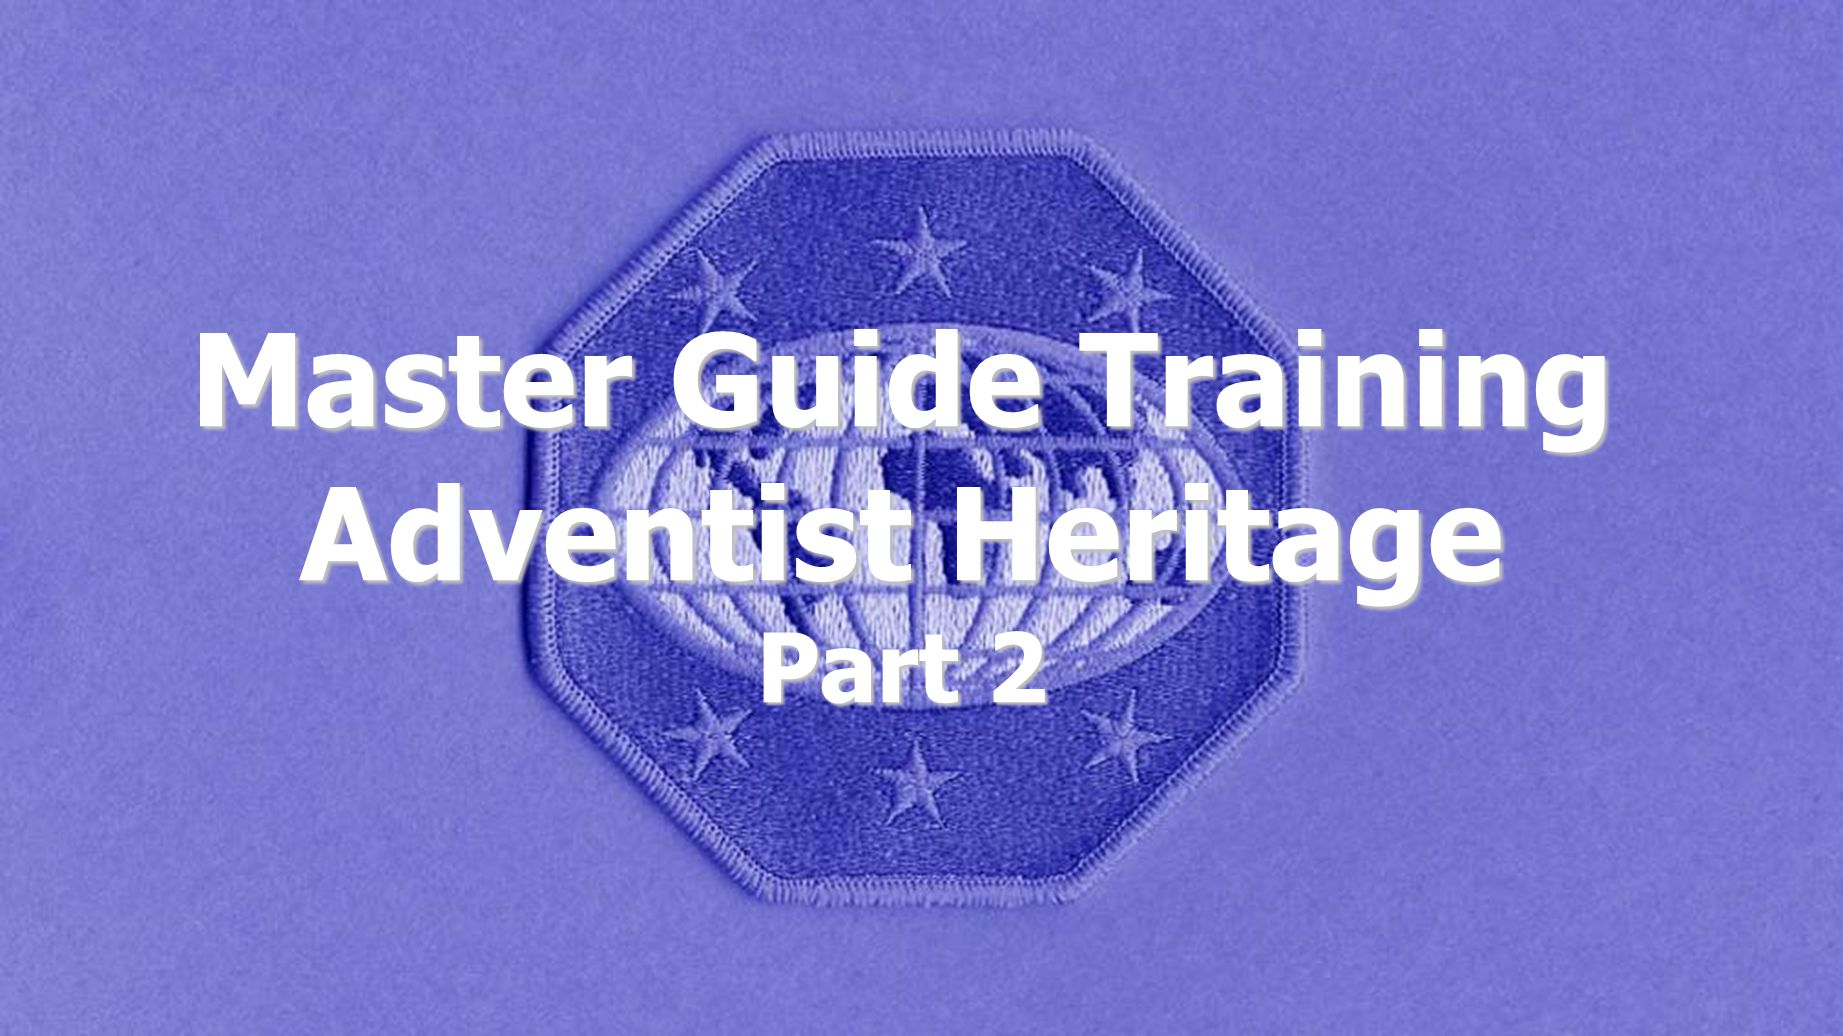 Master Guide Training Adventist Heritage Part 2